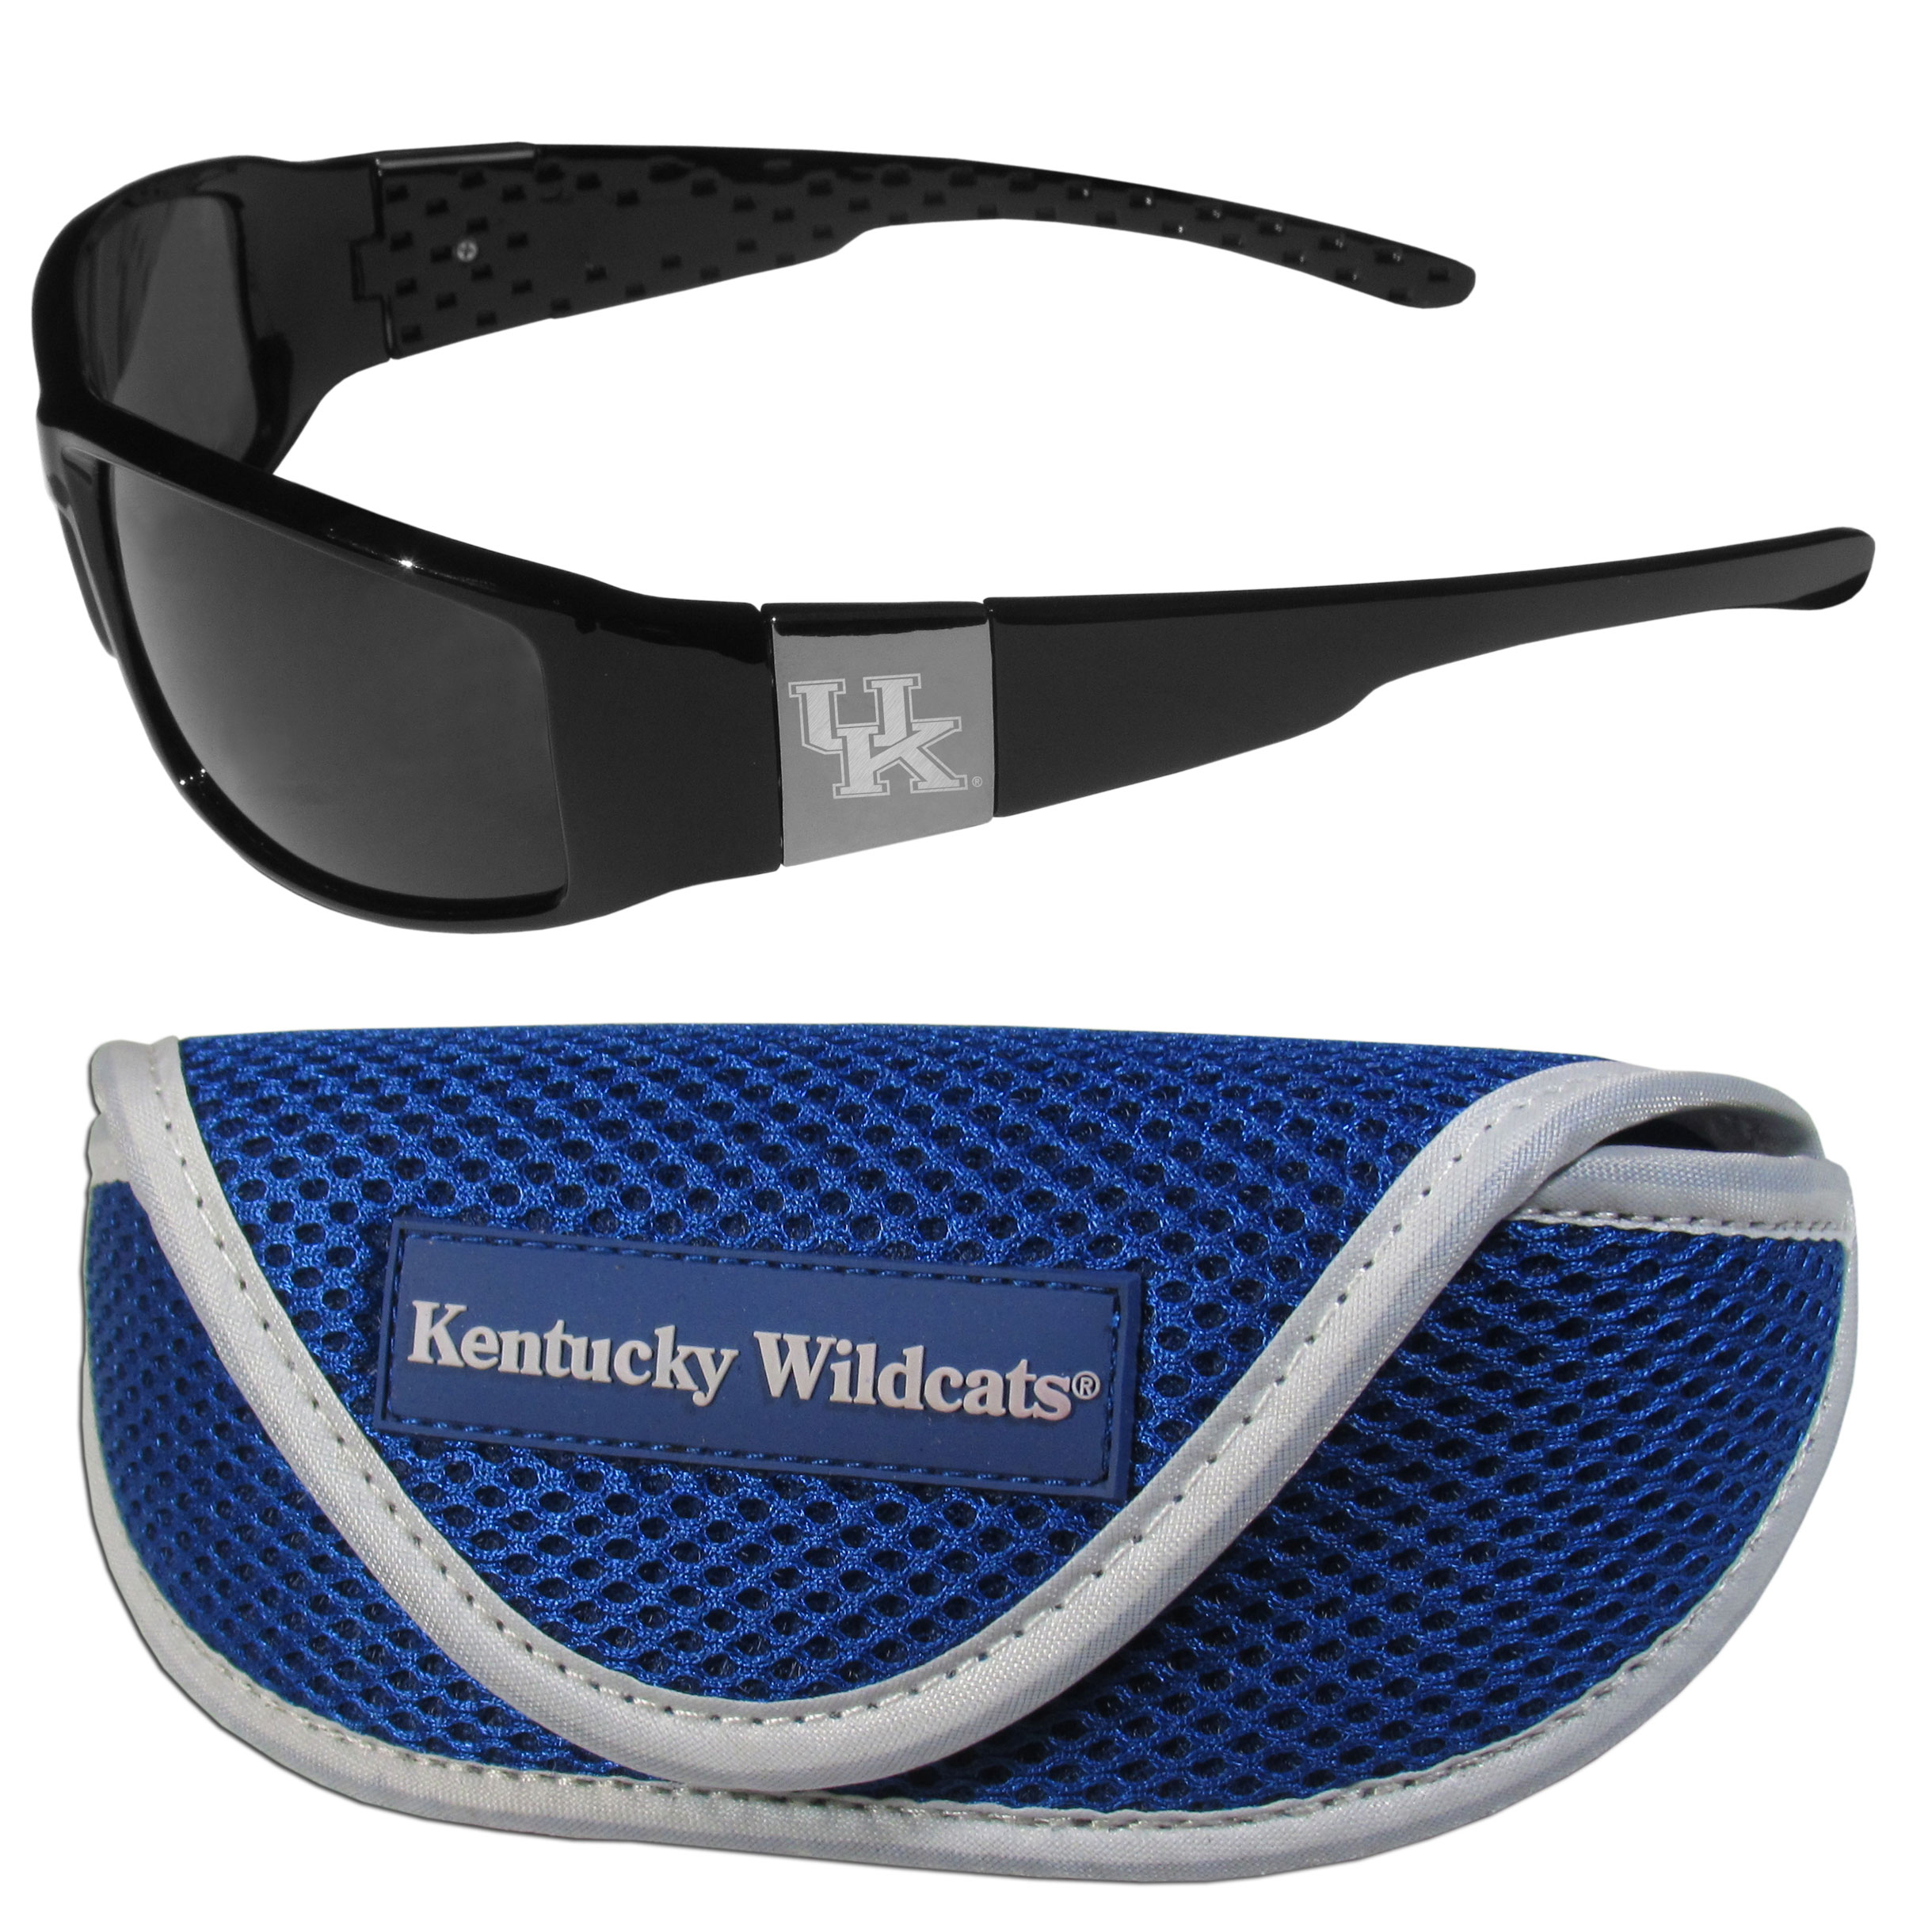 Kentucky Wildcats Chrome Wrap Sunglasses and Sport Carrying Case - These designer inspired frames have a sleek look in all black with high-polish chrome Kentucky Wildcats shields on each arm with an etched logo. The shades are perfect any outdoor activity like; golfing, driving, hiking, fishing or cheering on the team at a tailgating event or an at home game day BBQ with a lens rating of 100% UVA/UVB for maximum UV protection. The high-quality frames are as durable as they are fashionable and with their classic look they are perfect fan accessory that can be worn everyday for every occasion. The shades come with a zippered hard shell case to keep your sunglasses safe.